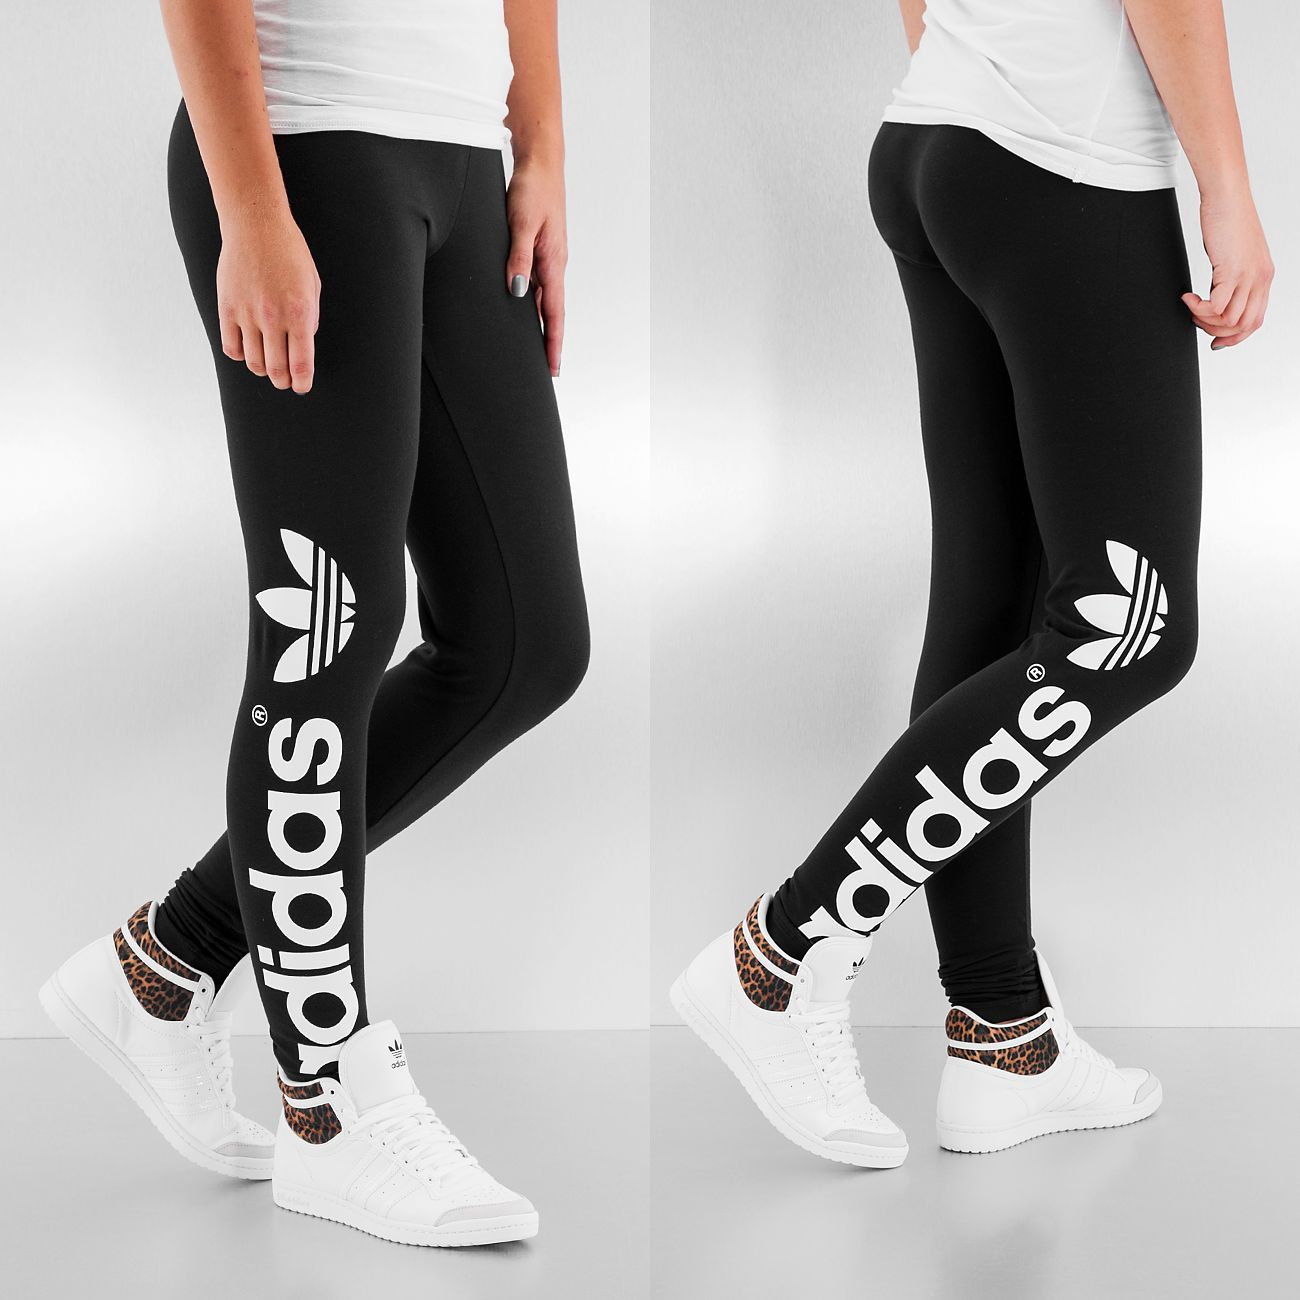 adidas hose legging trefoil in schwarz adidas todo dia pinterest adidas black and fashion. Black Bedroom Furniture Sets. Home Design Ideas